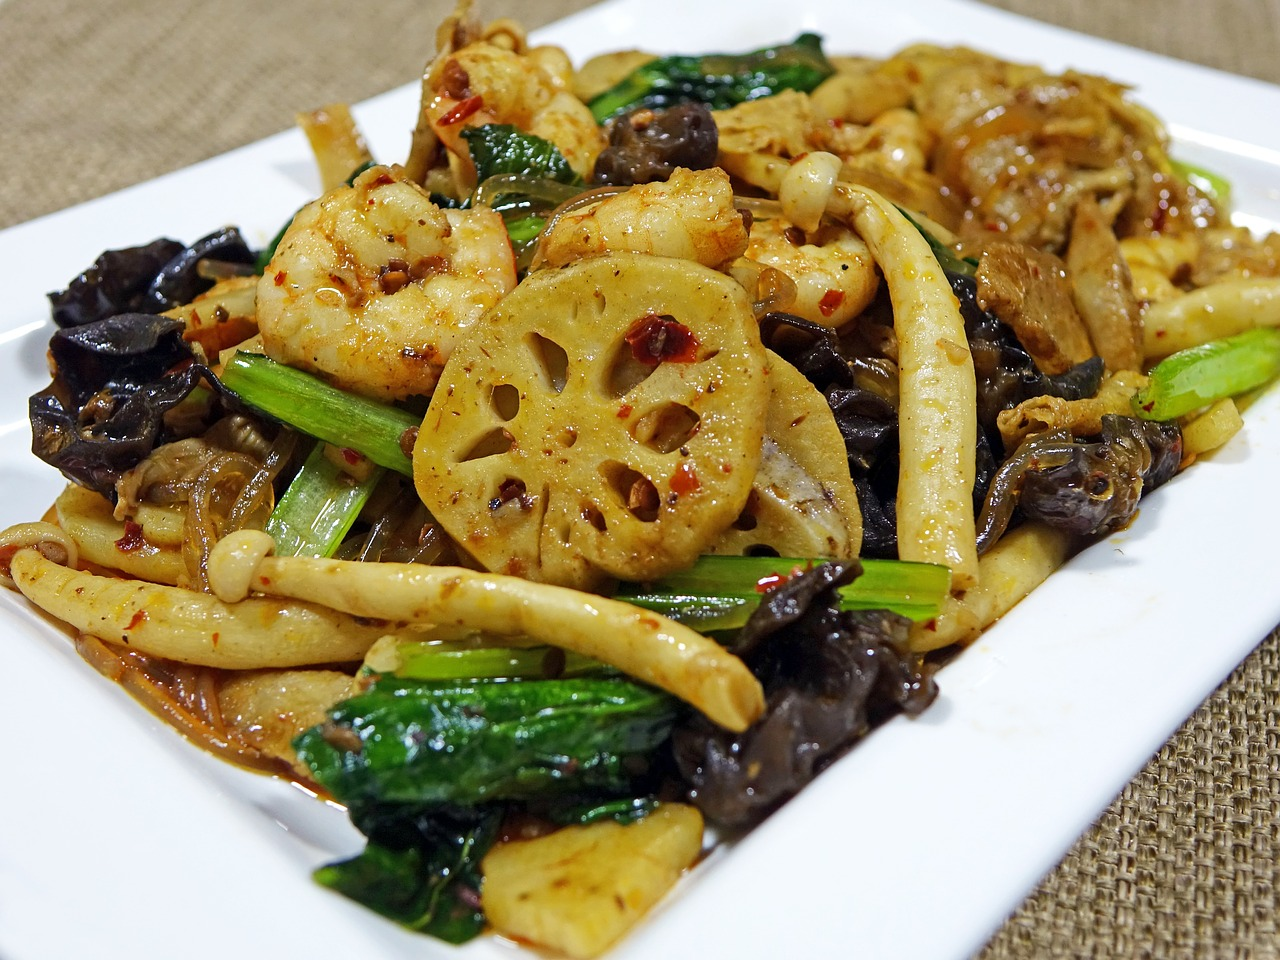 Mushroom with vegetables